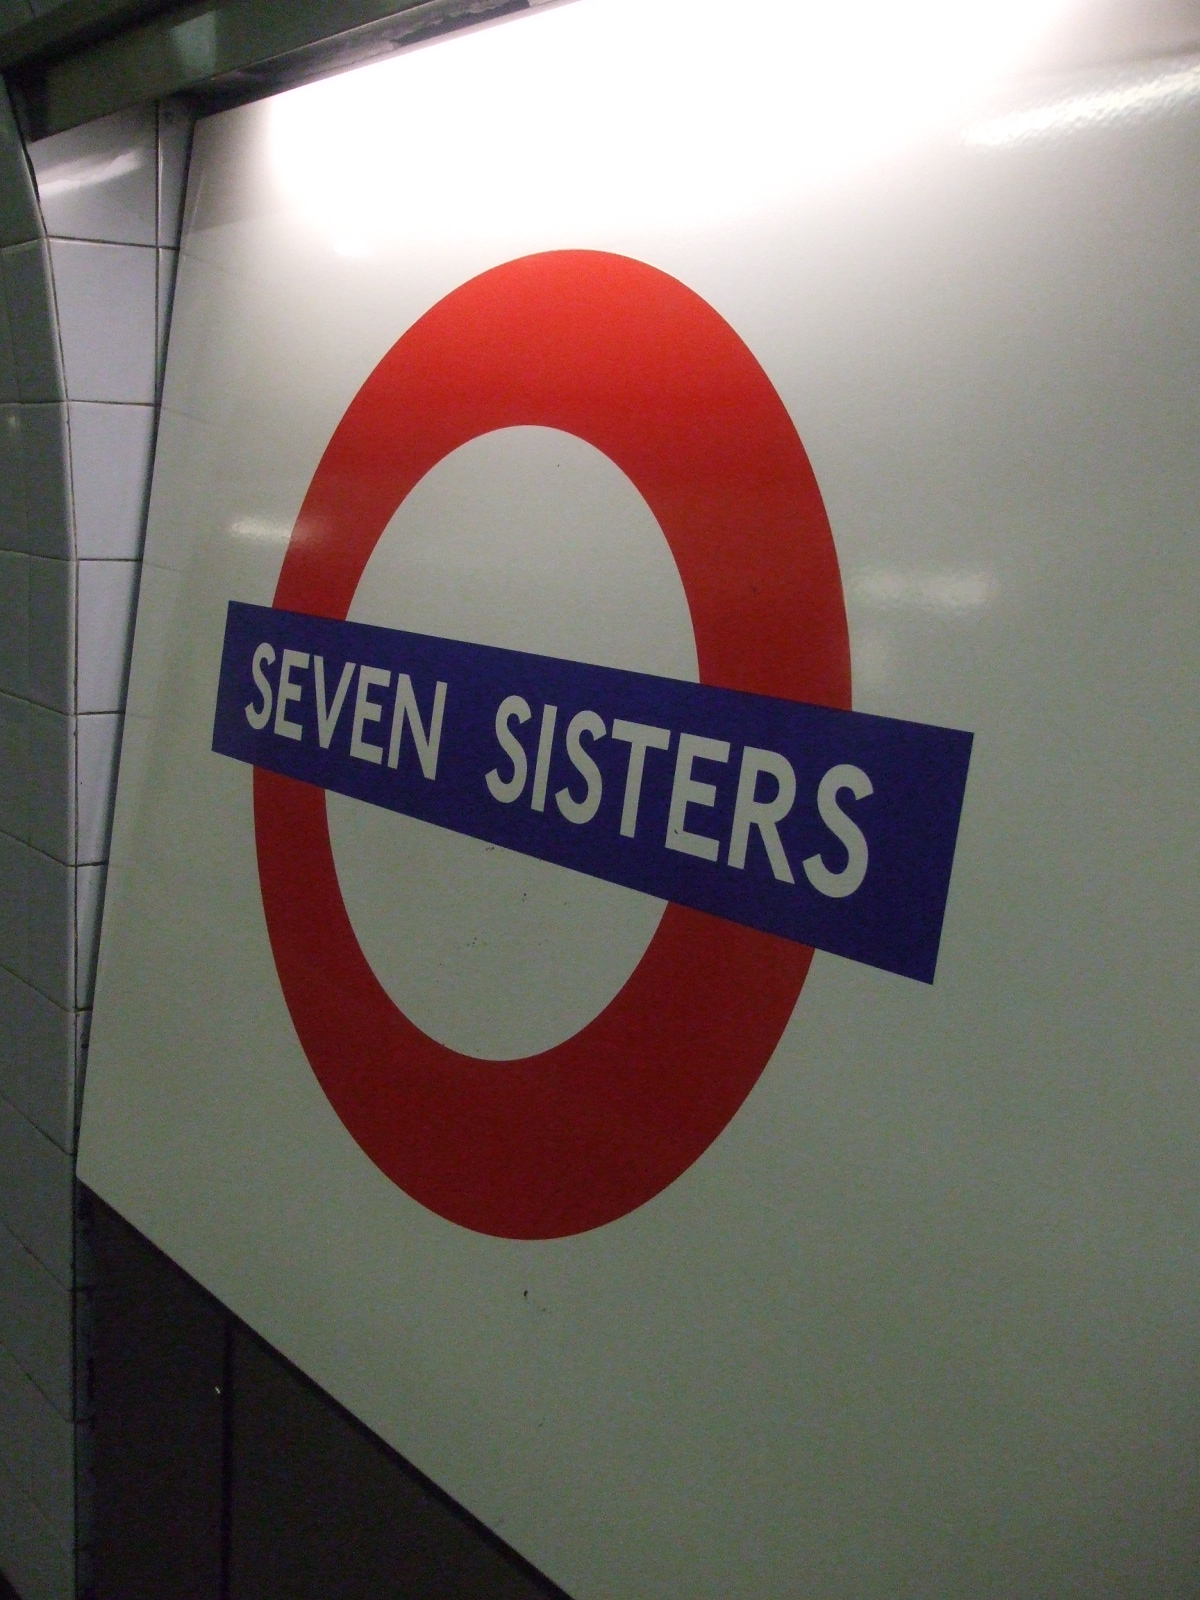 http://upload.wikimedia.org/wikipedia/commons/e/ec/Seven_Sisters_stn_Victoria_roundel.JPG?uselang=en-gb